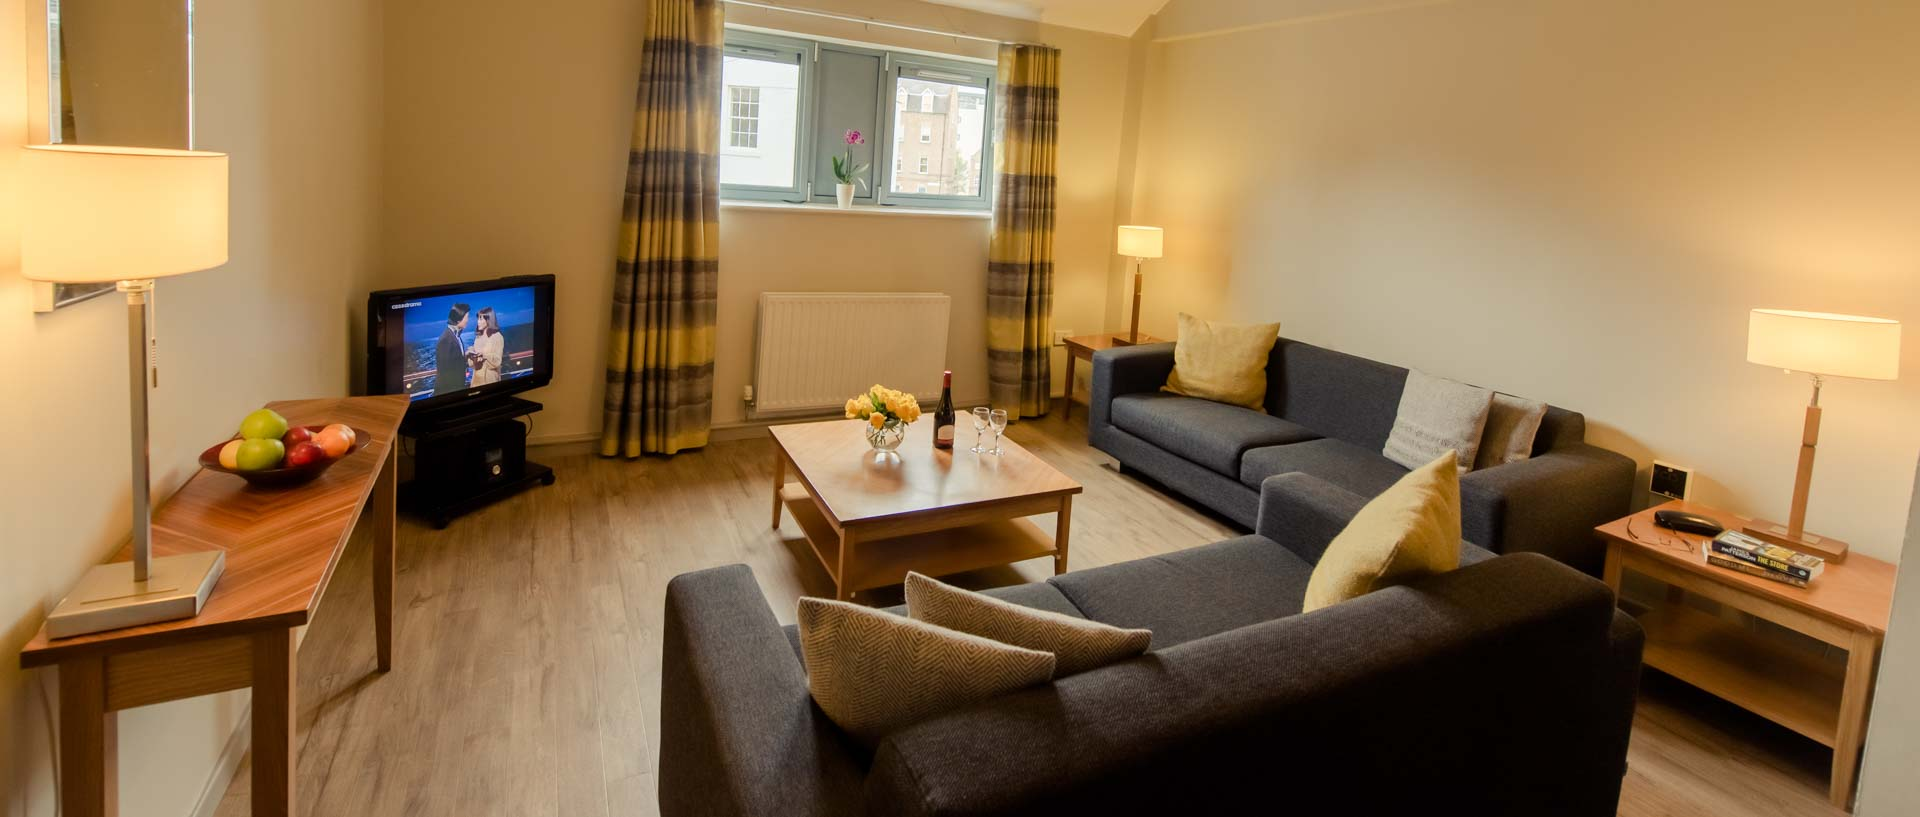 The lounge area in PREMIER SUITES Newcastle serviced apartments